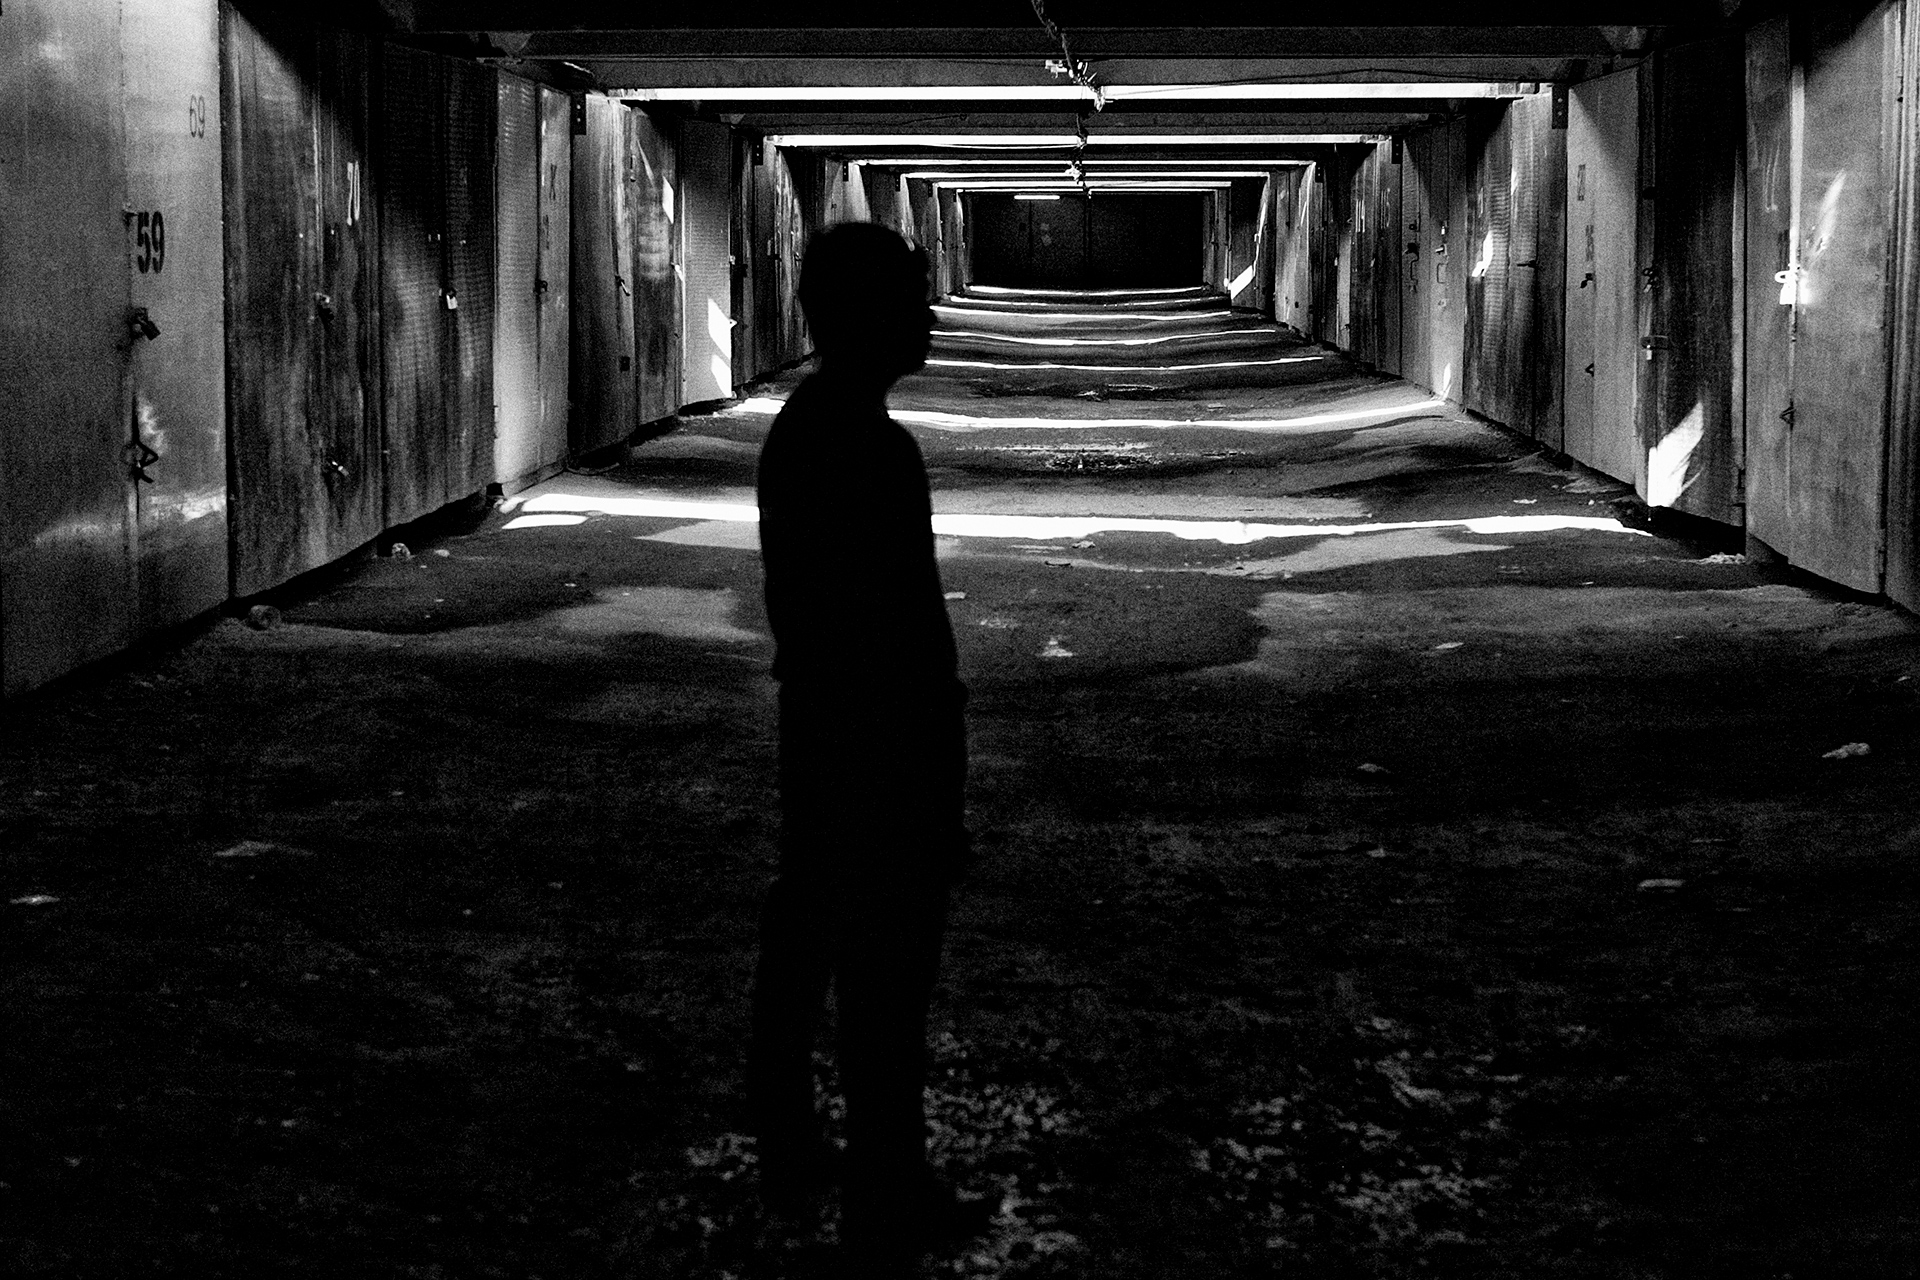 Underground, ODD exhibition, silhouette, stripes, dark, black, gothic, industrial